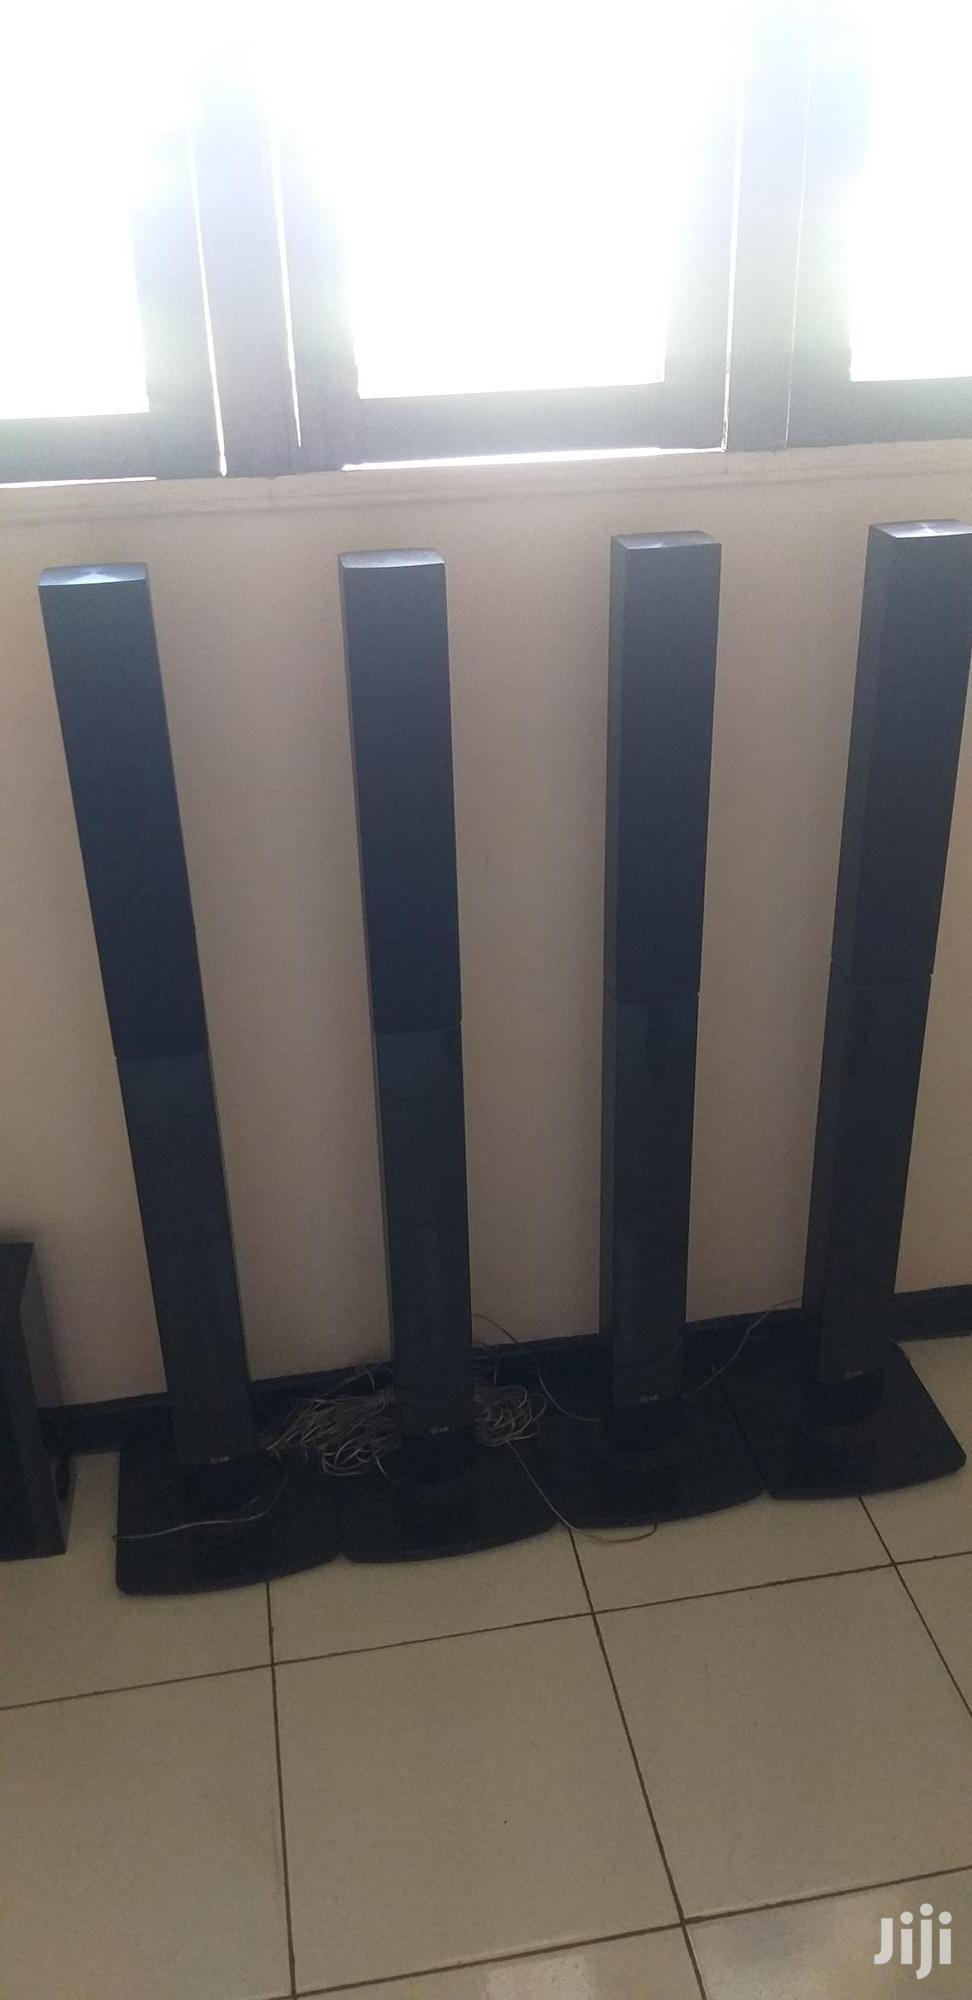 Archive: Home Theater System